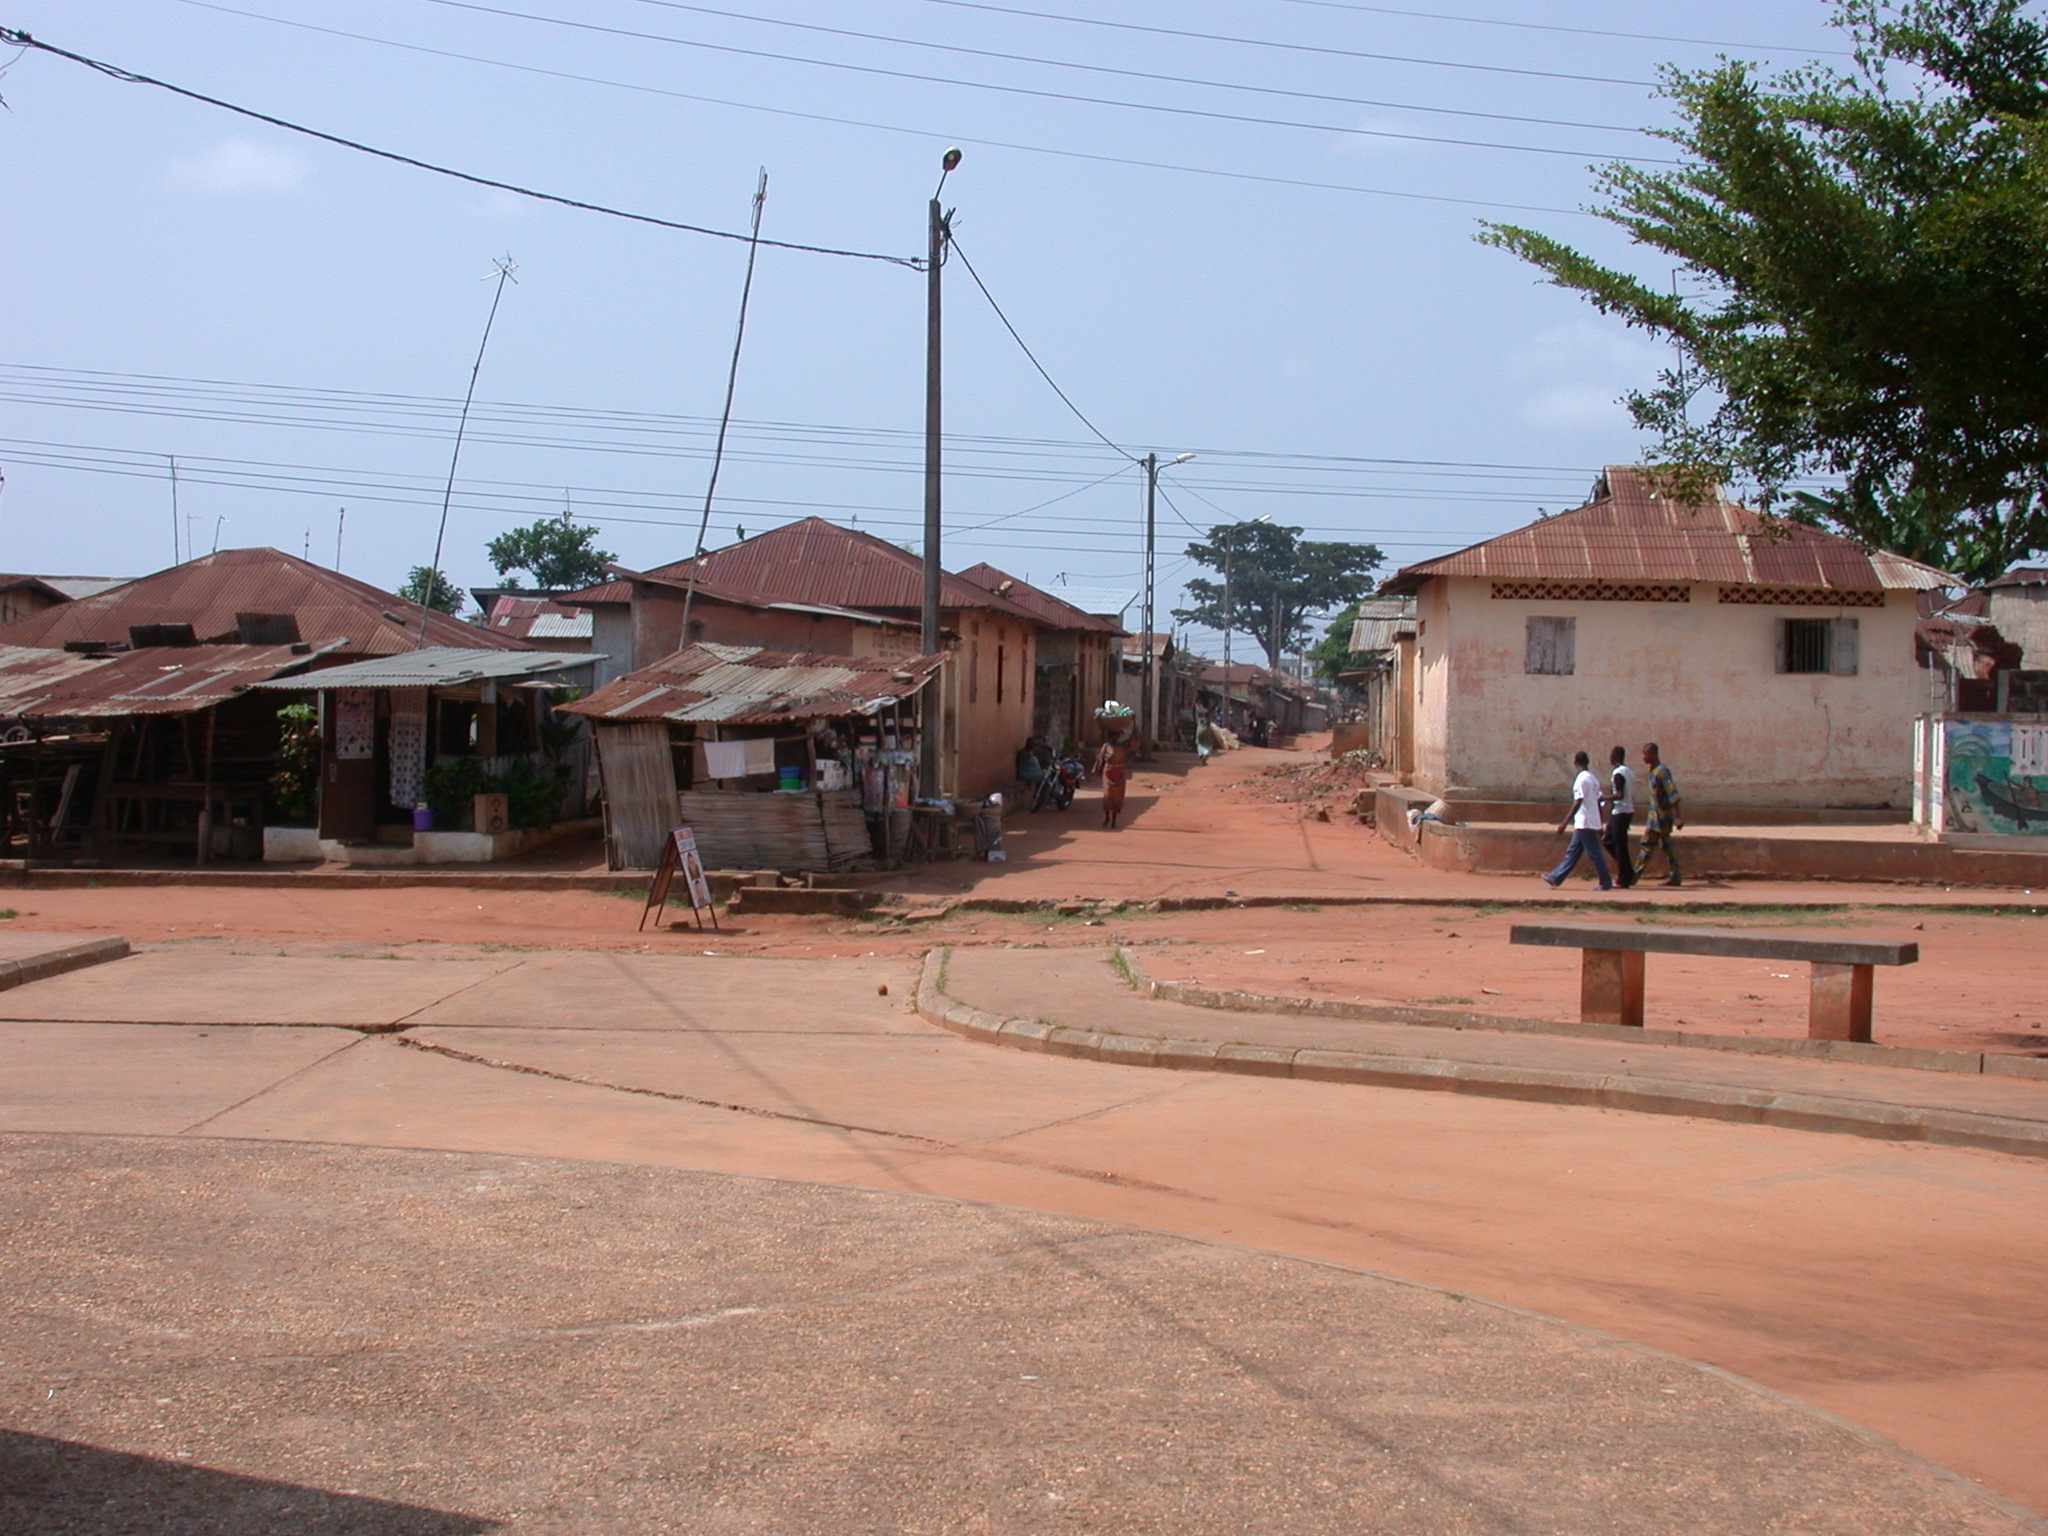 Paved Road and Shacks, Ouidah, Benin